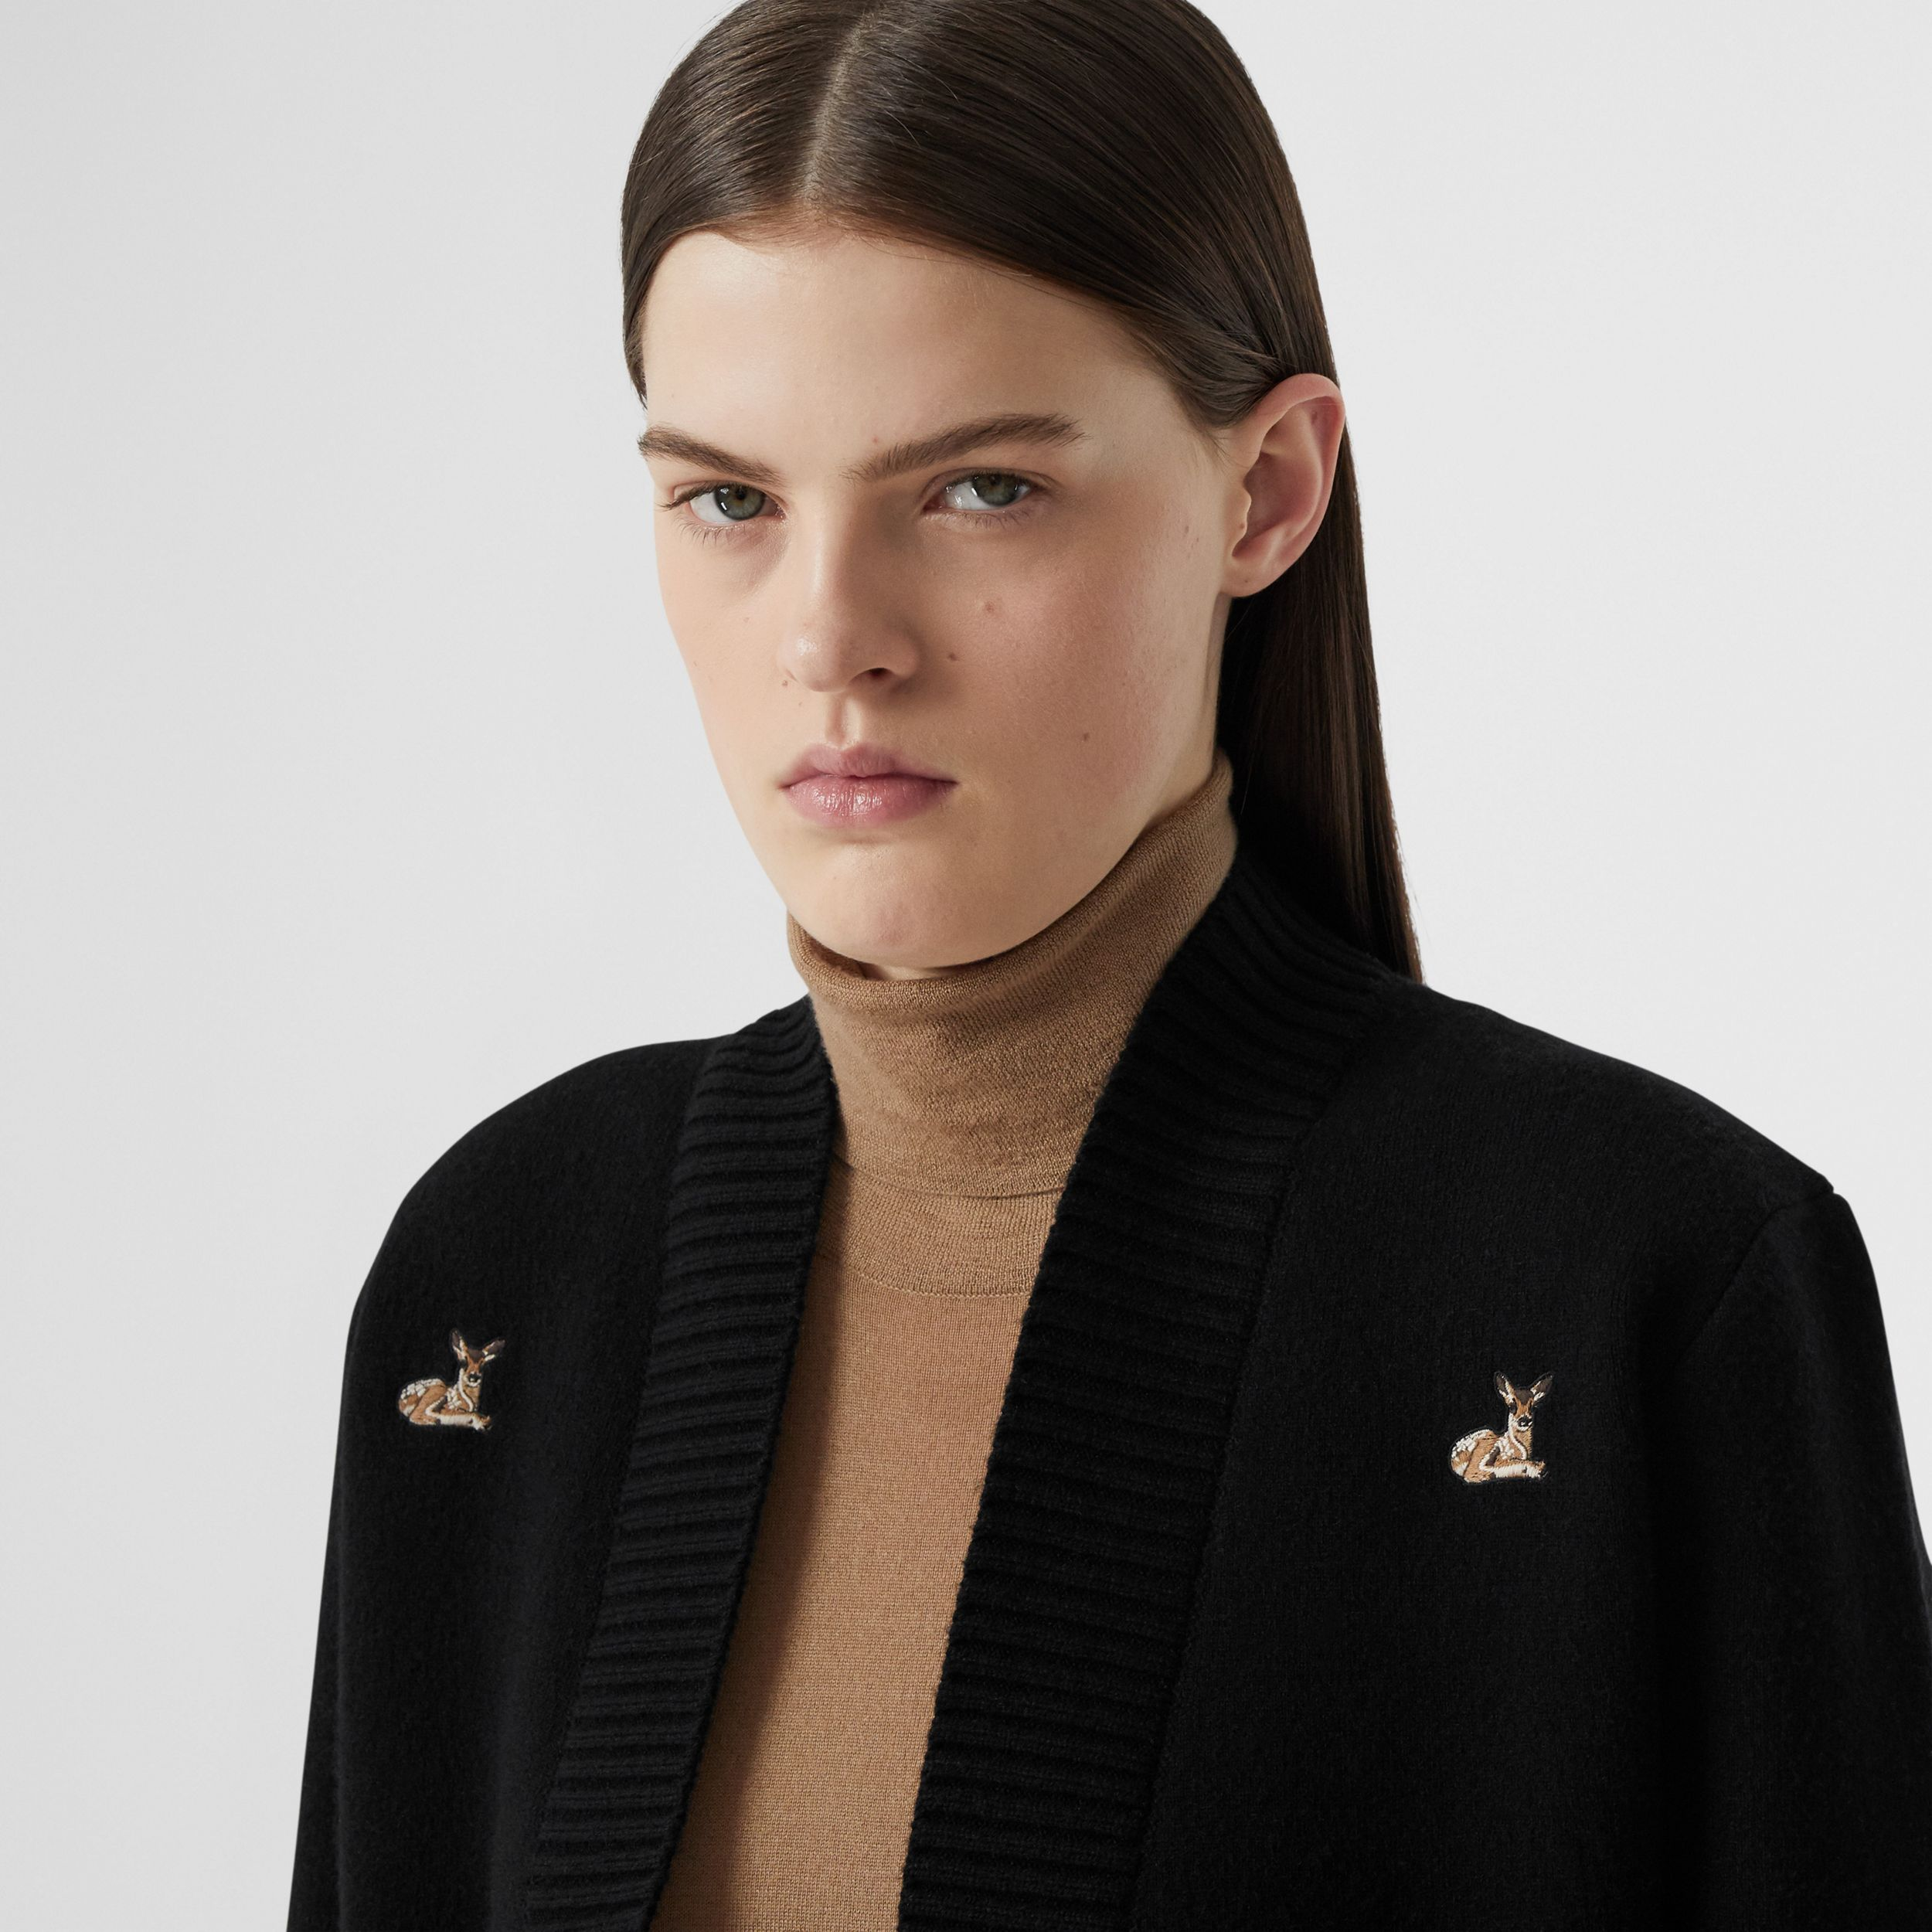 Deer Motif Wool Cashmere Blend Oversized Cardigan in Black - Women | Burberry - 2